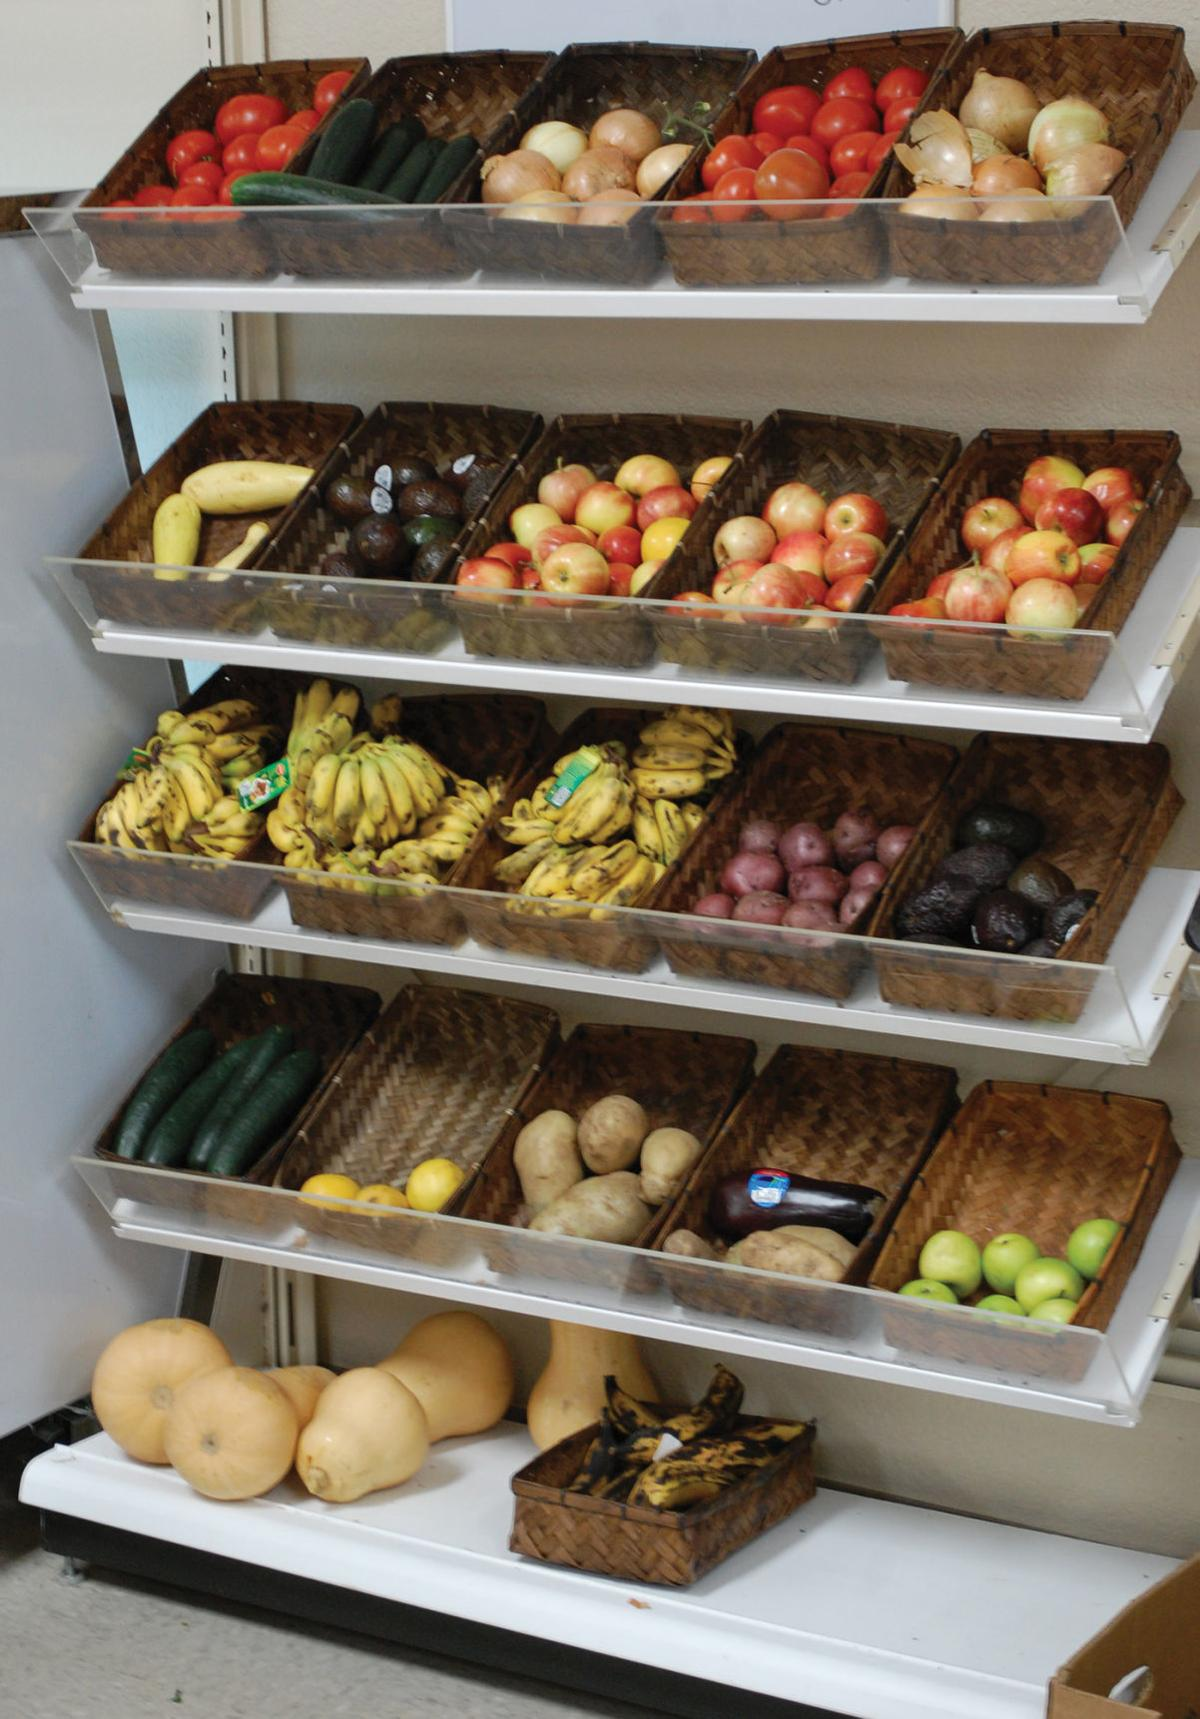 Steele County Food Shelf aims for SuperShelf status, asks locals to ...